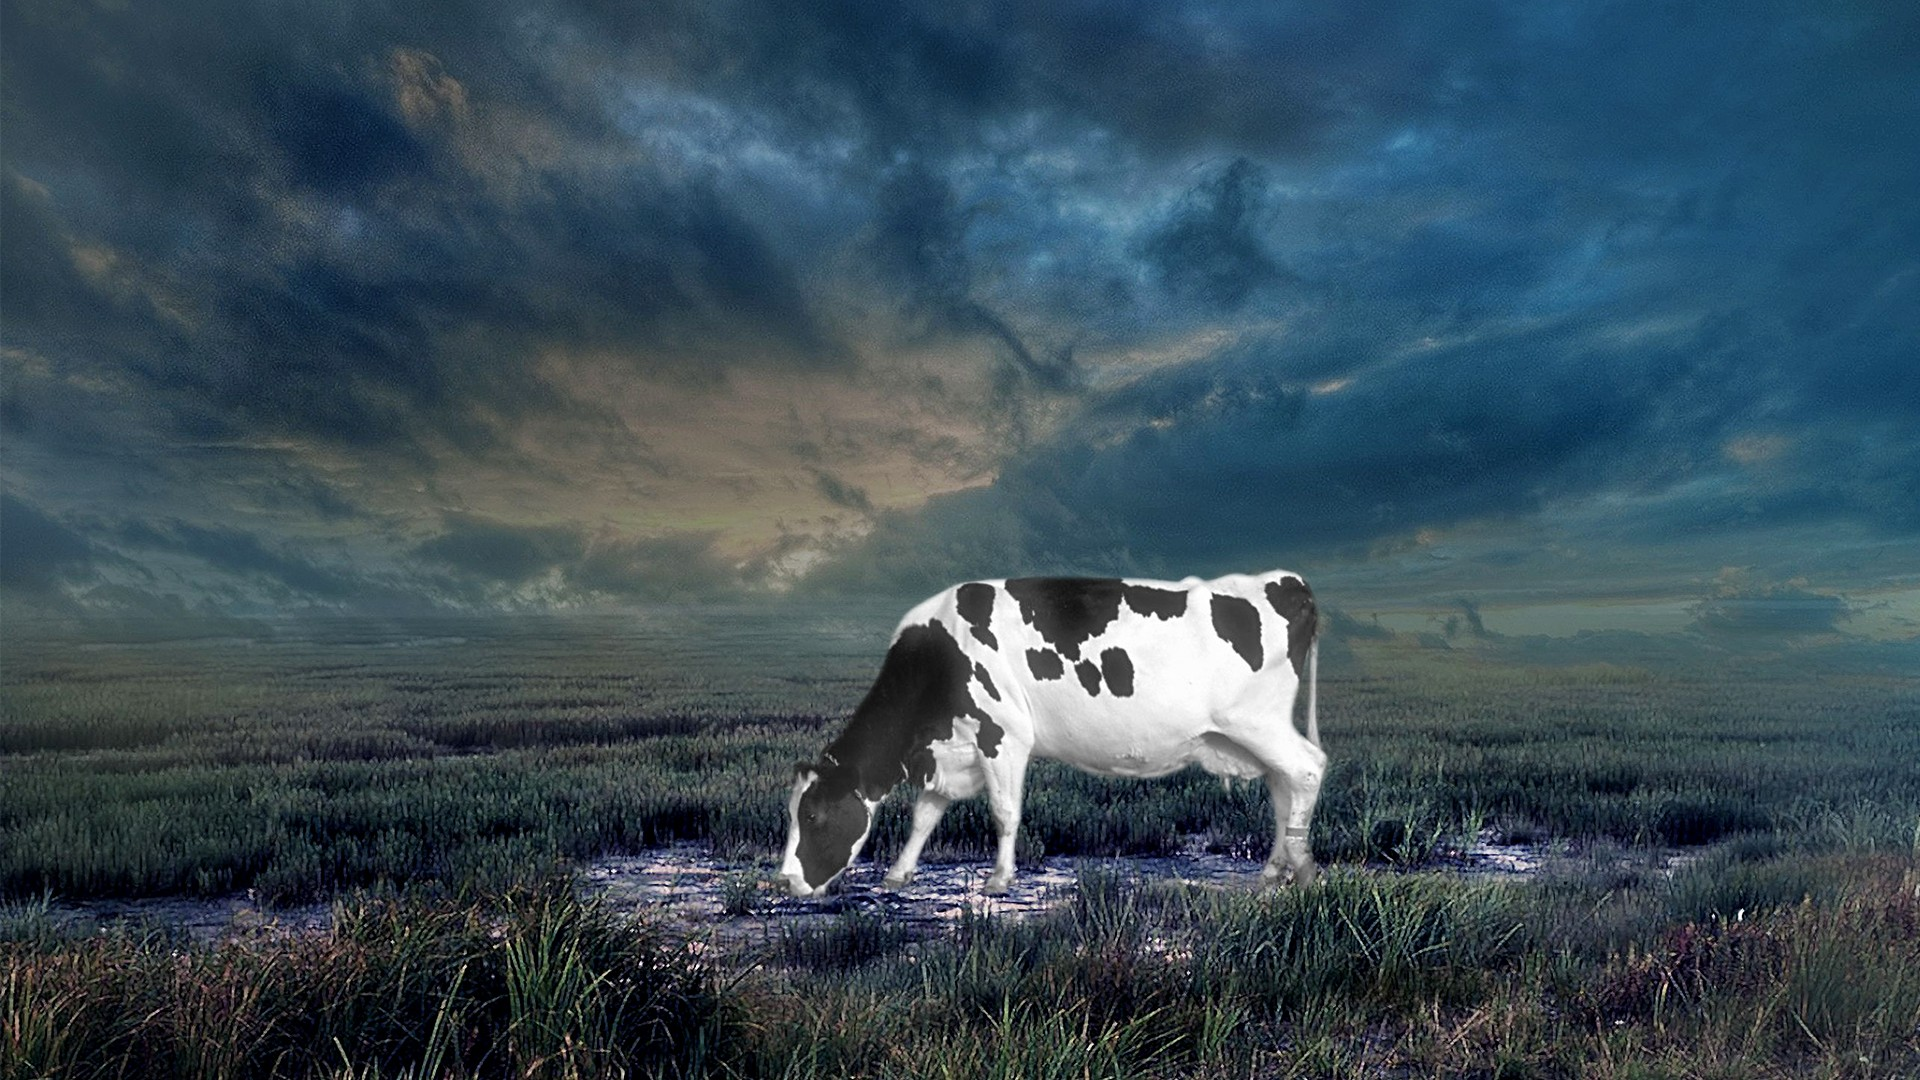 Cow High Definition Wallpapers High Resolution Cow